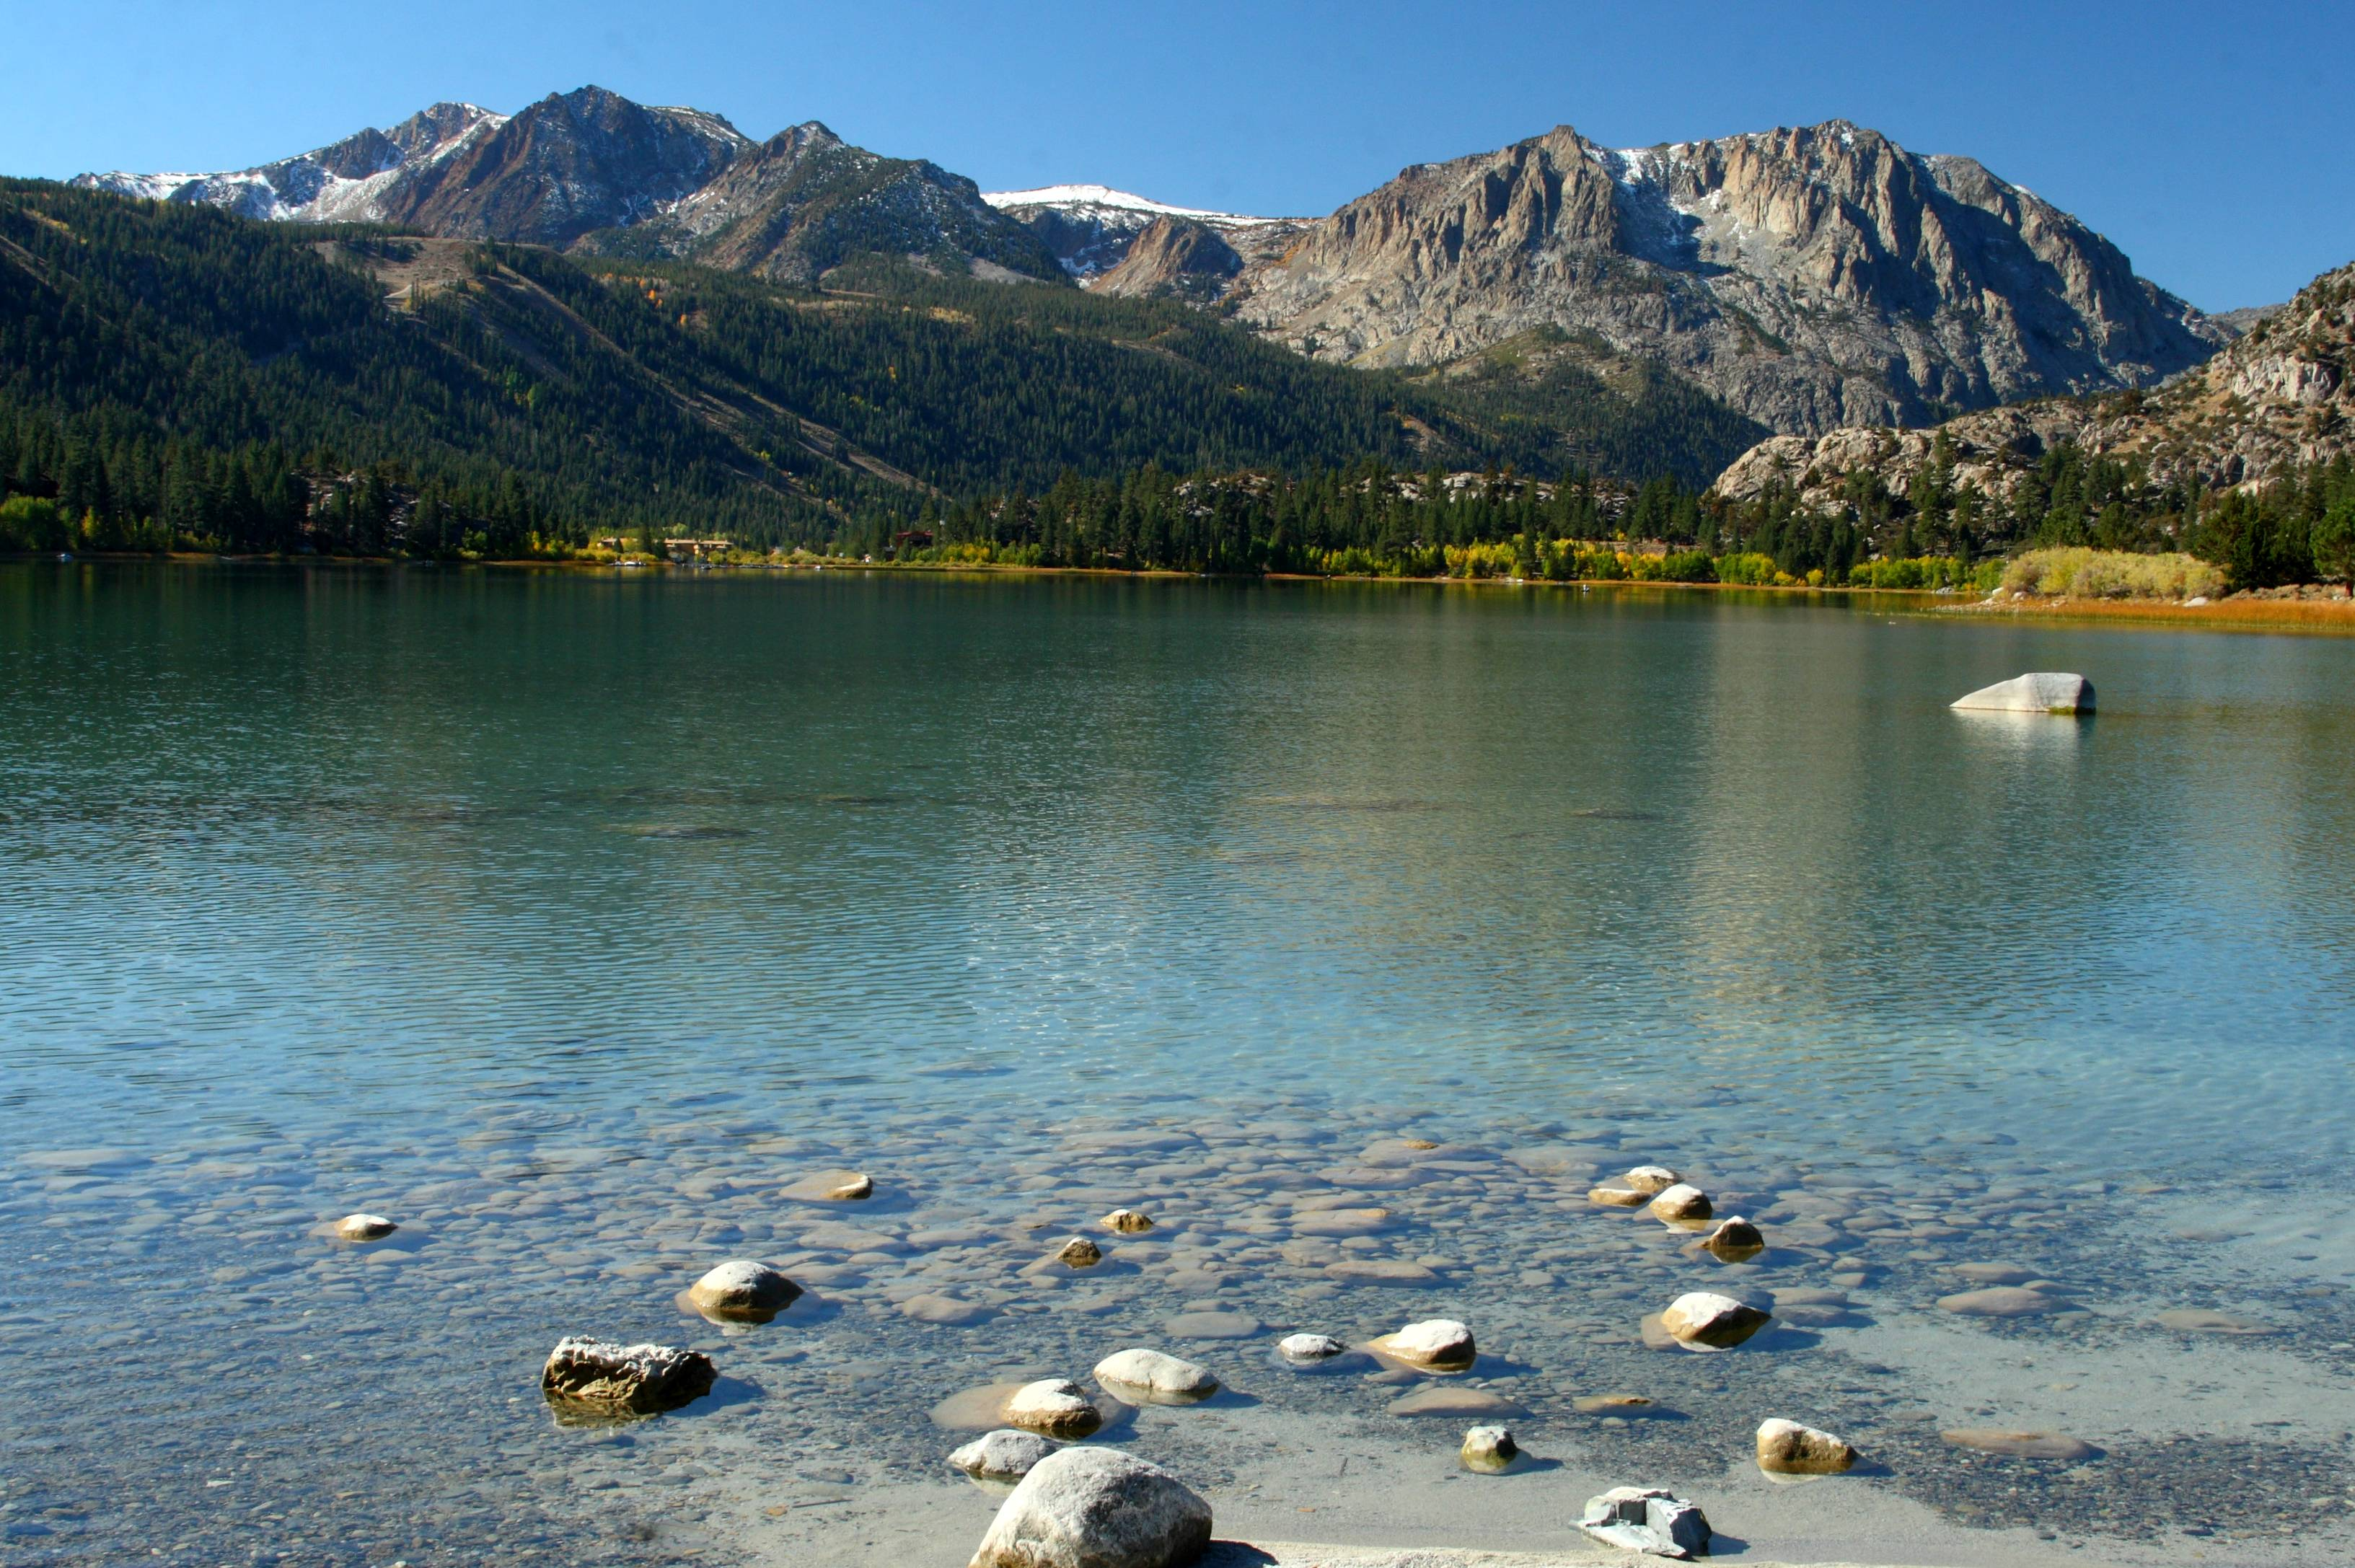 File:June Lake with Sierra crest.jpg - Wikimedia Commons